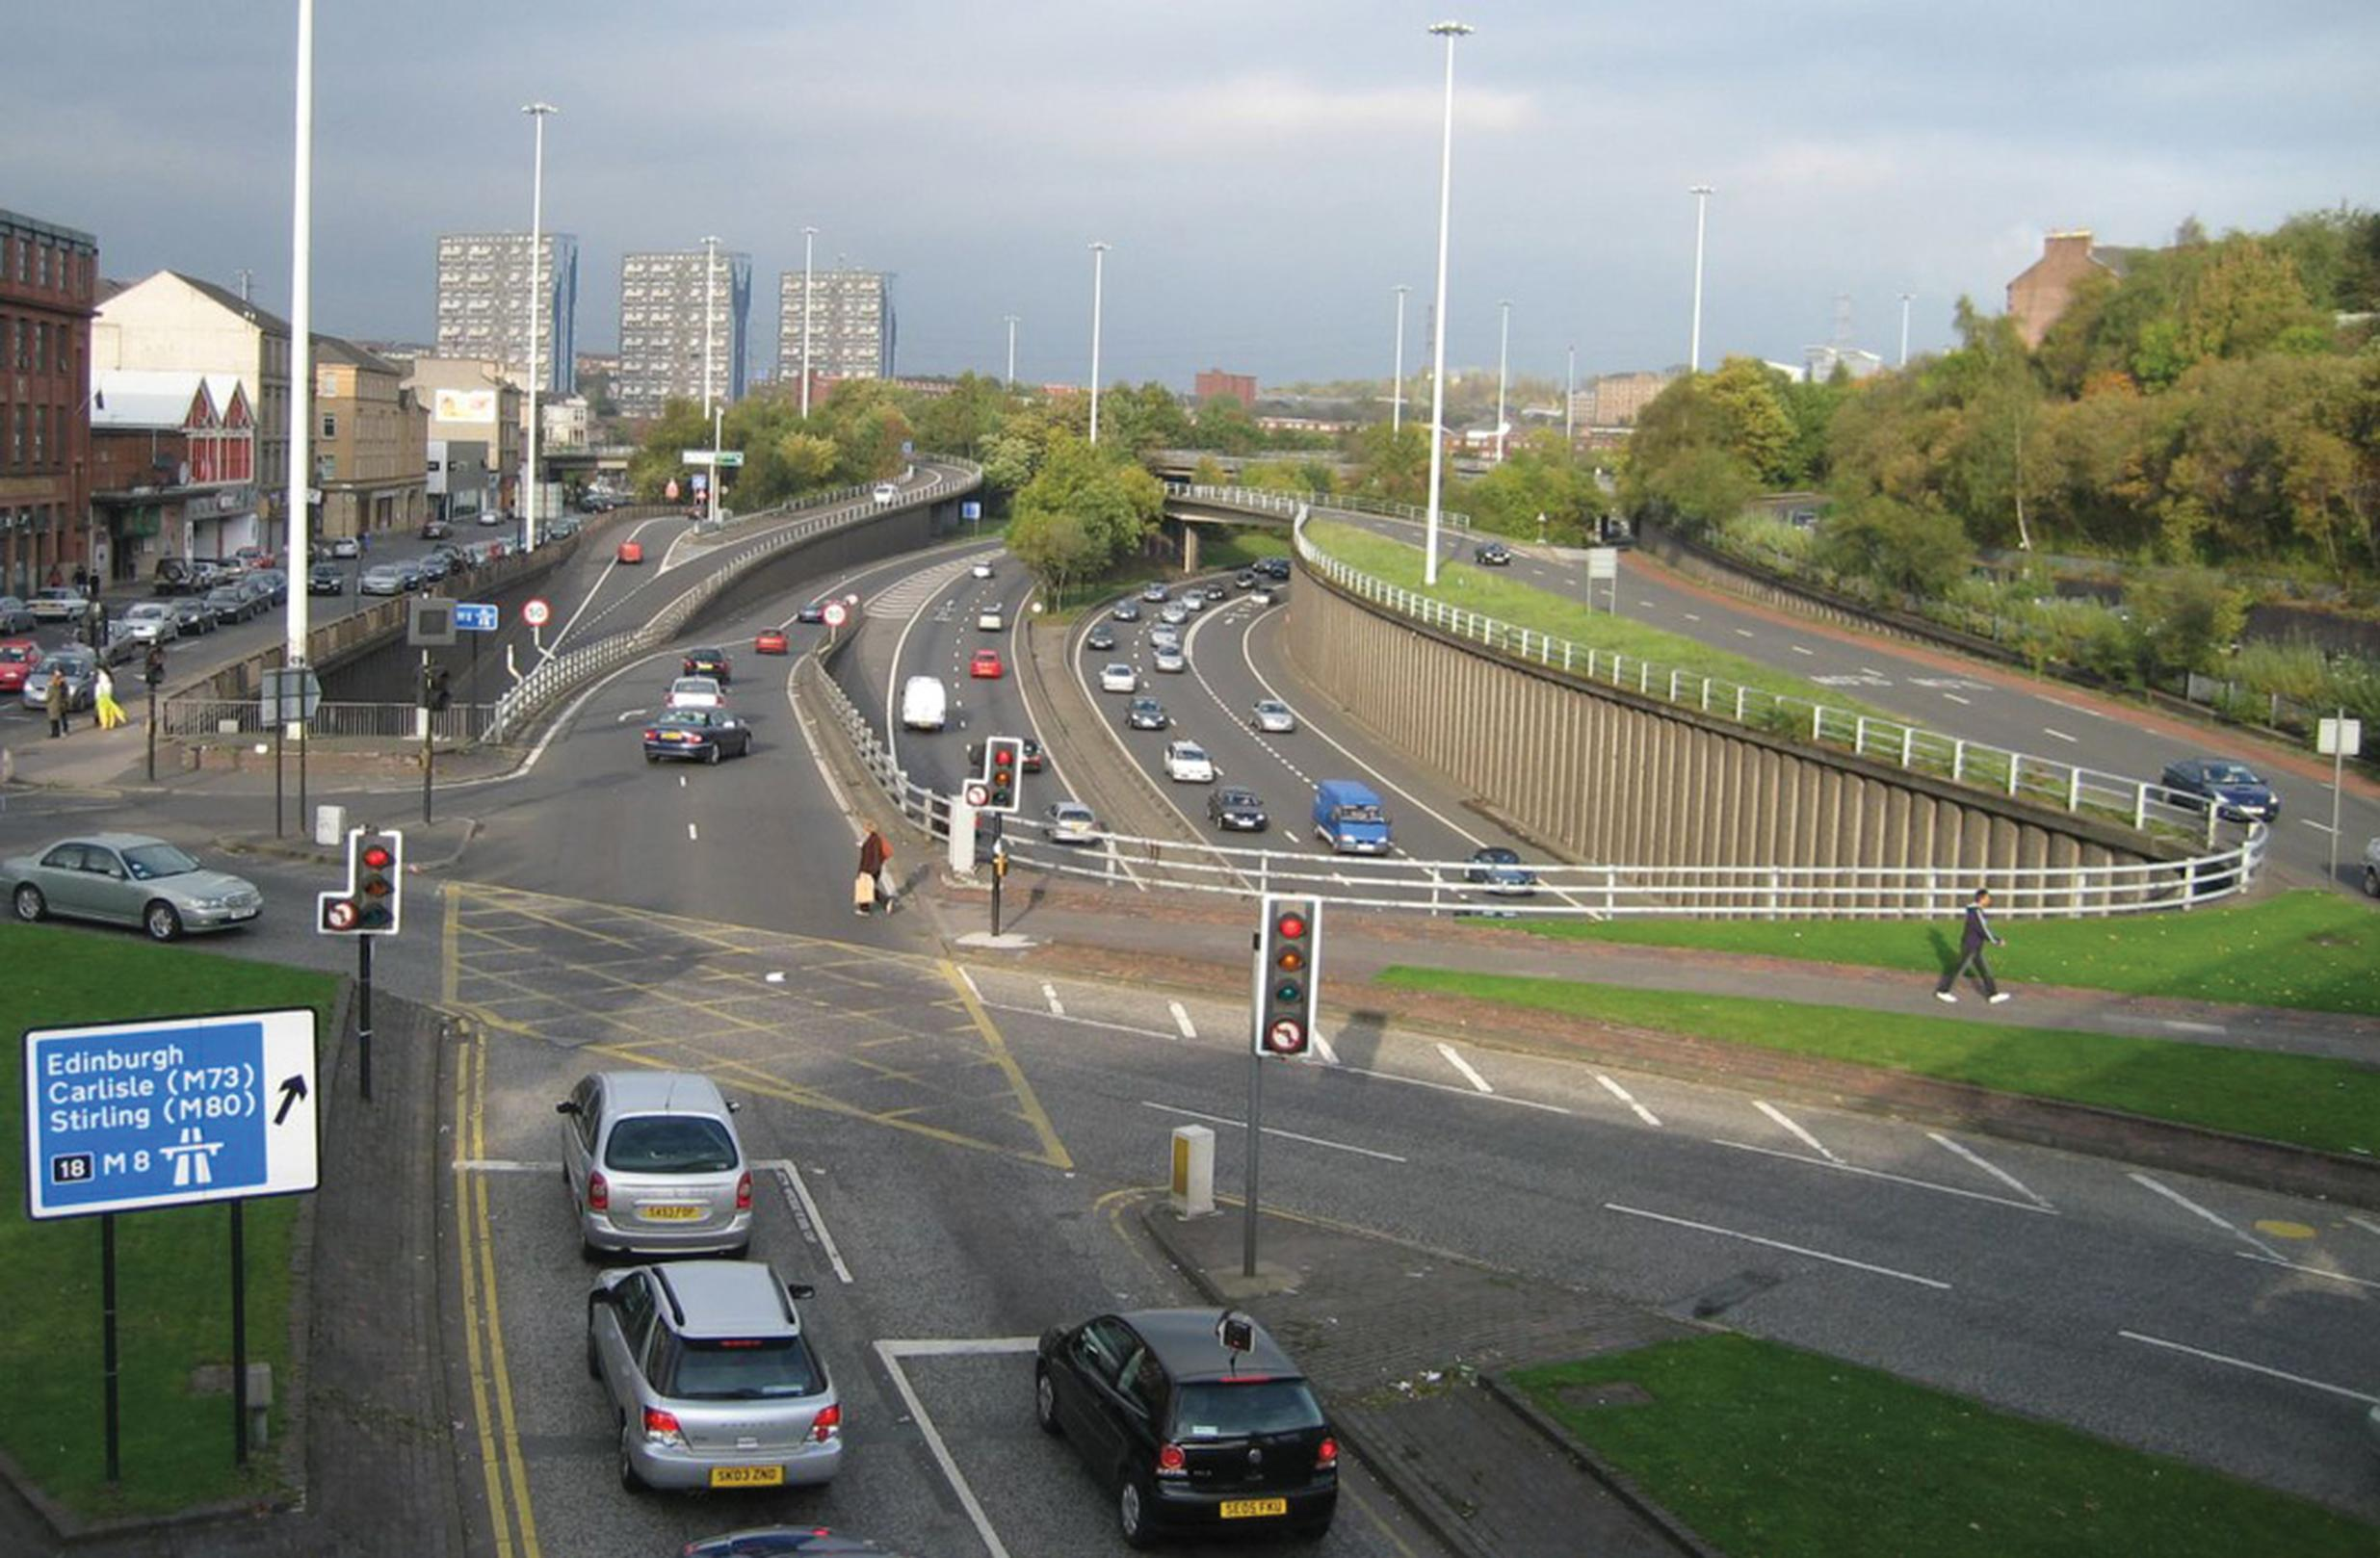 Glasgow: reserving outside lanes for buses would ensure they aren't disrupted by traffic joining/leaving the motorway